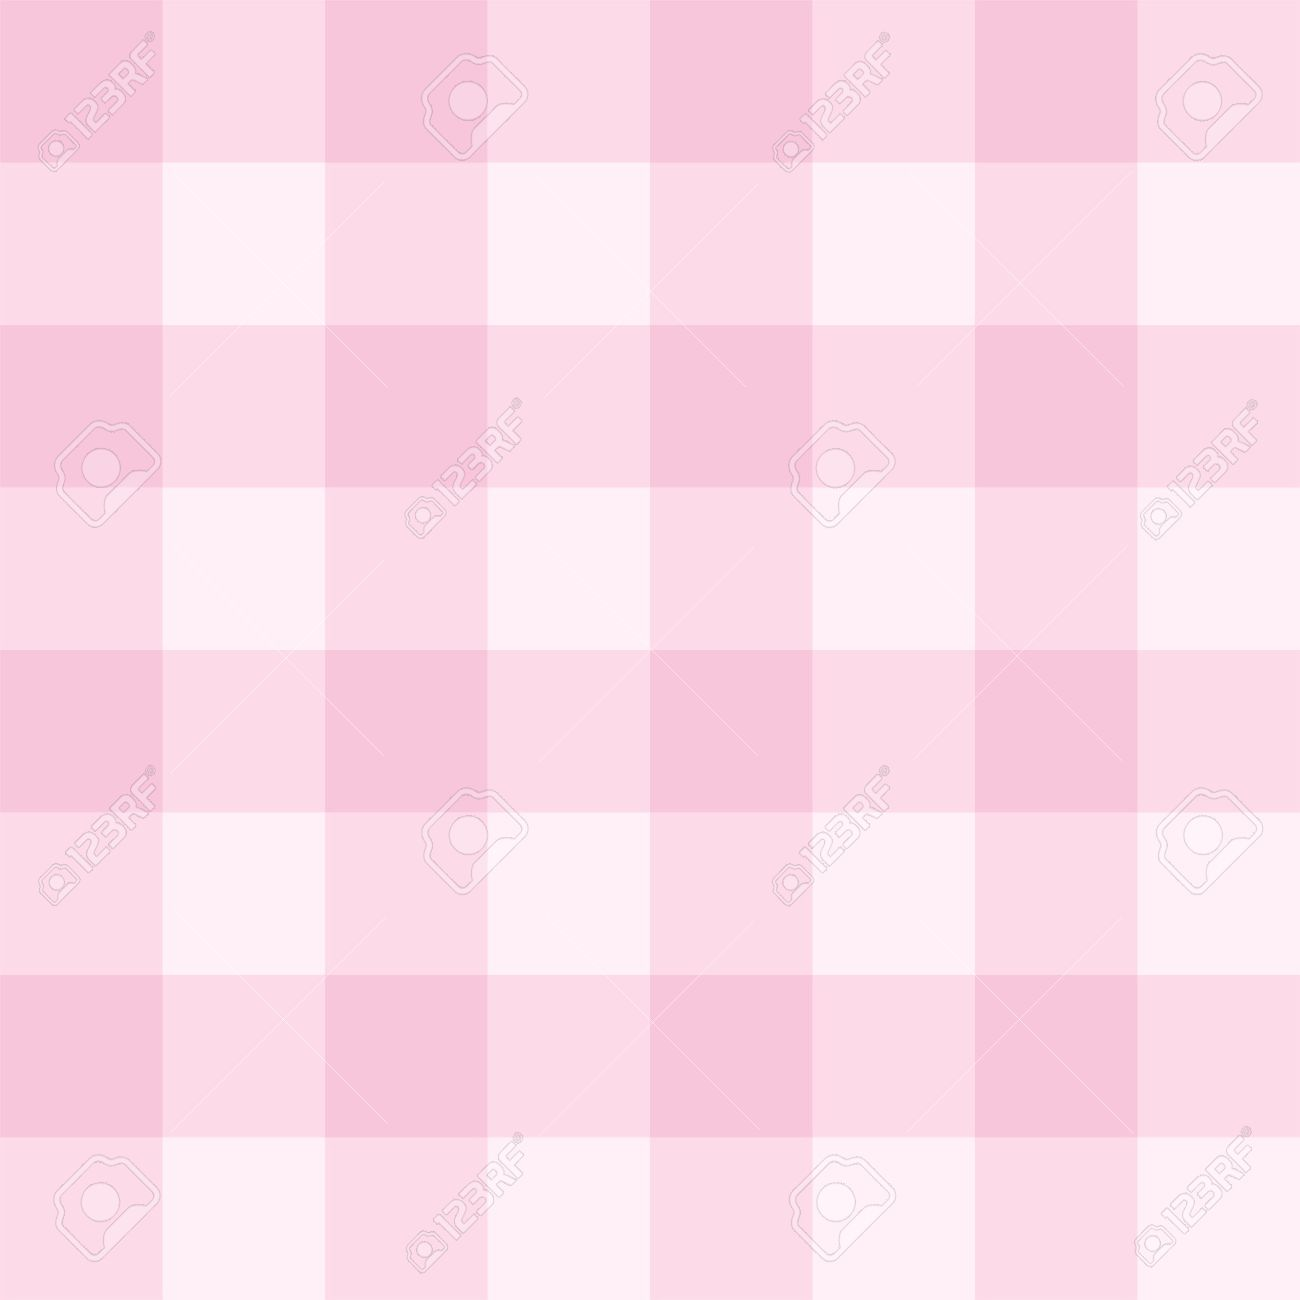 Checkered Design Seamless Sweet Baby Pink Background Checkered Pattern Or Grid